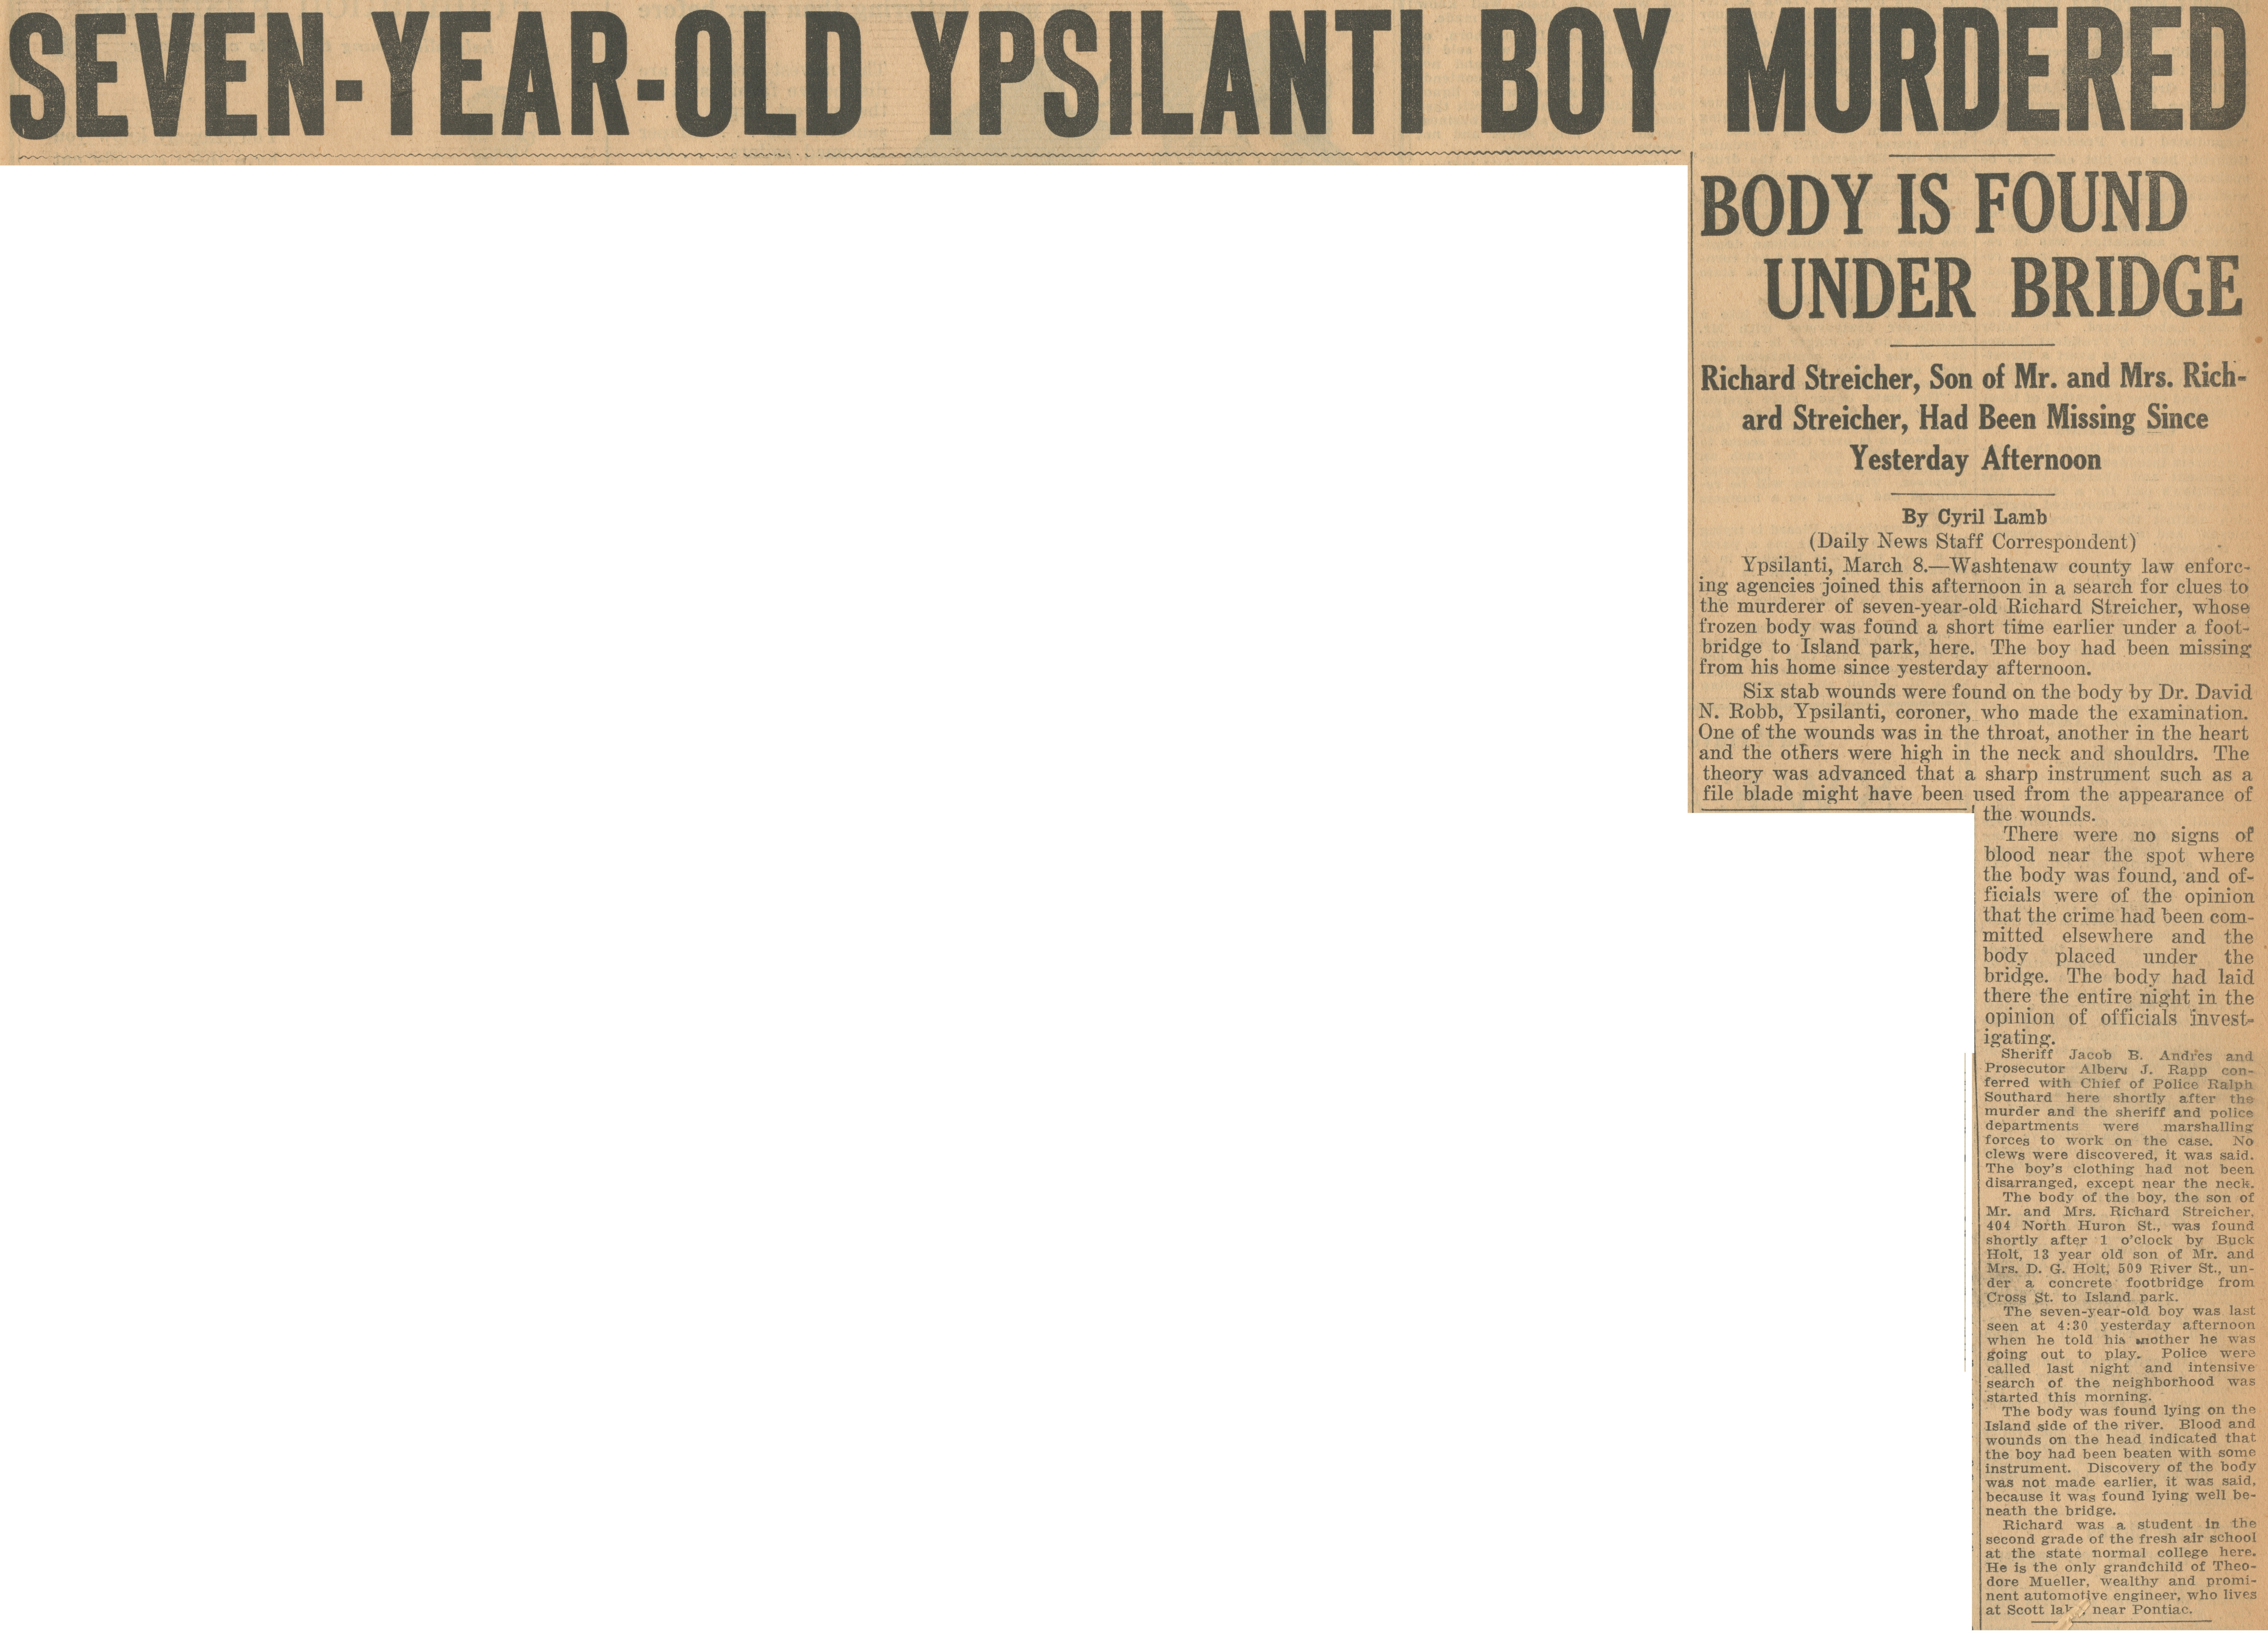 Seven-Year-Old Ypsilanti Boy Murdered image